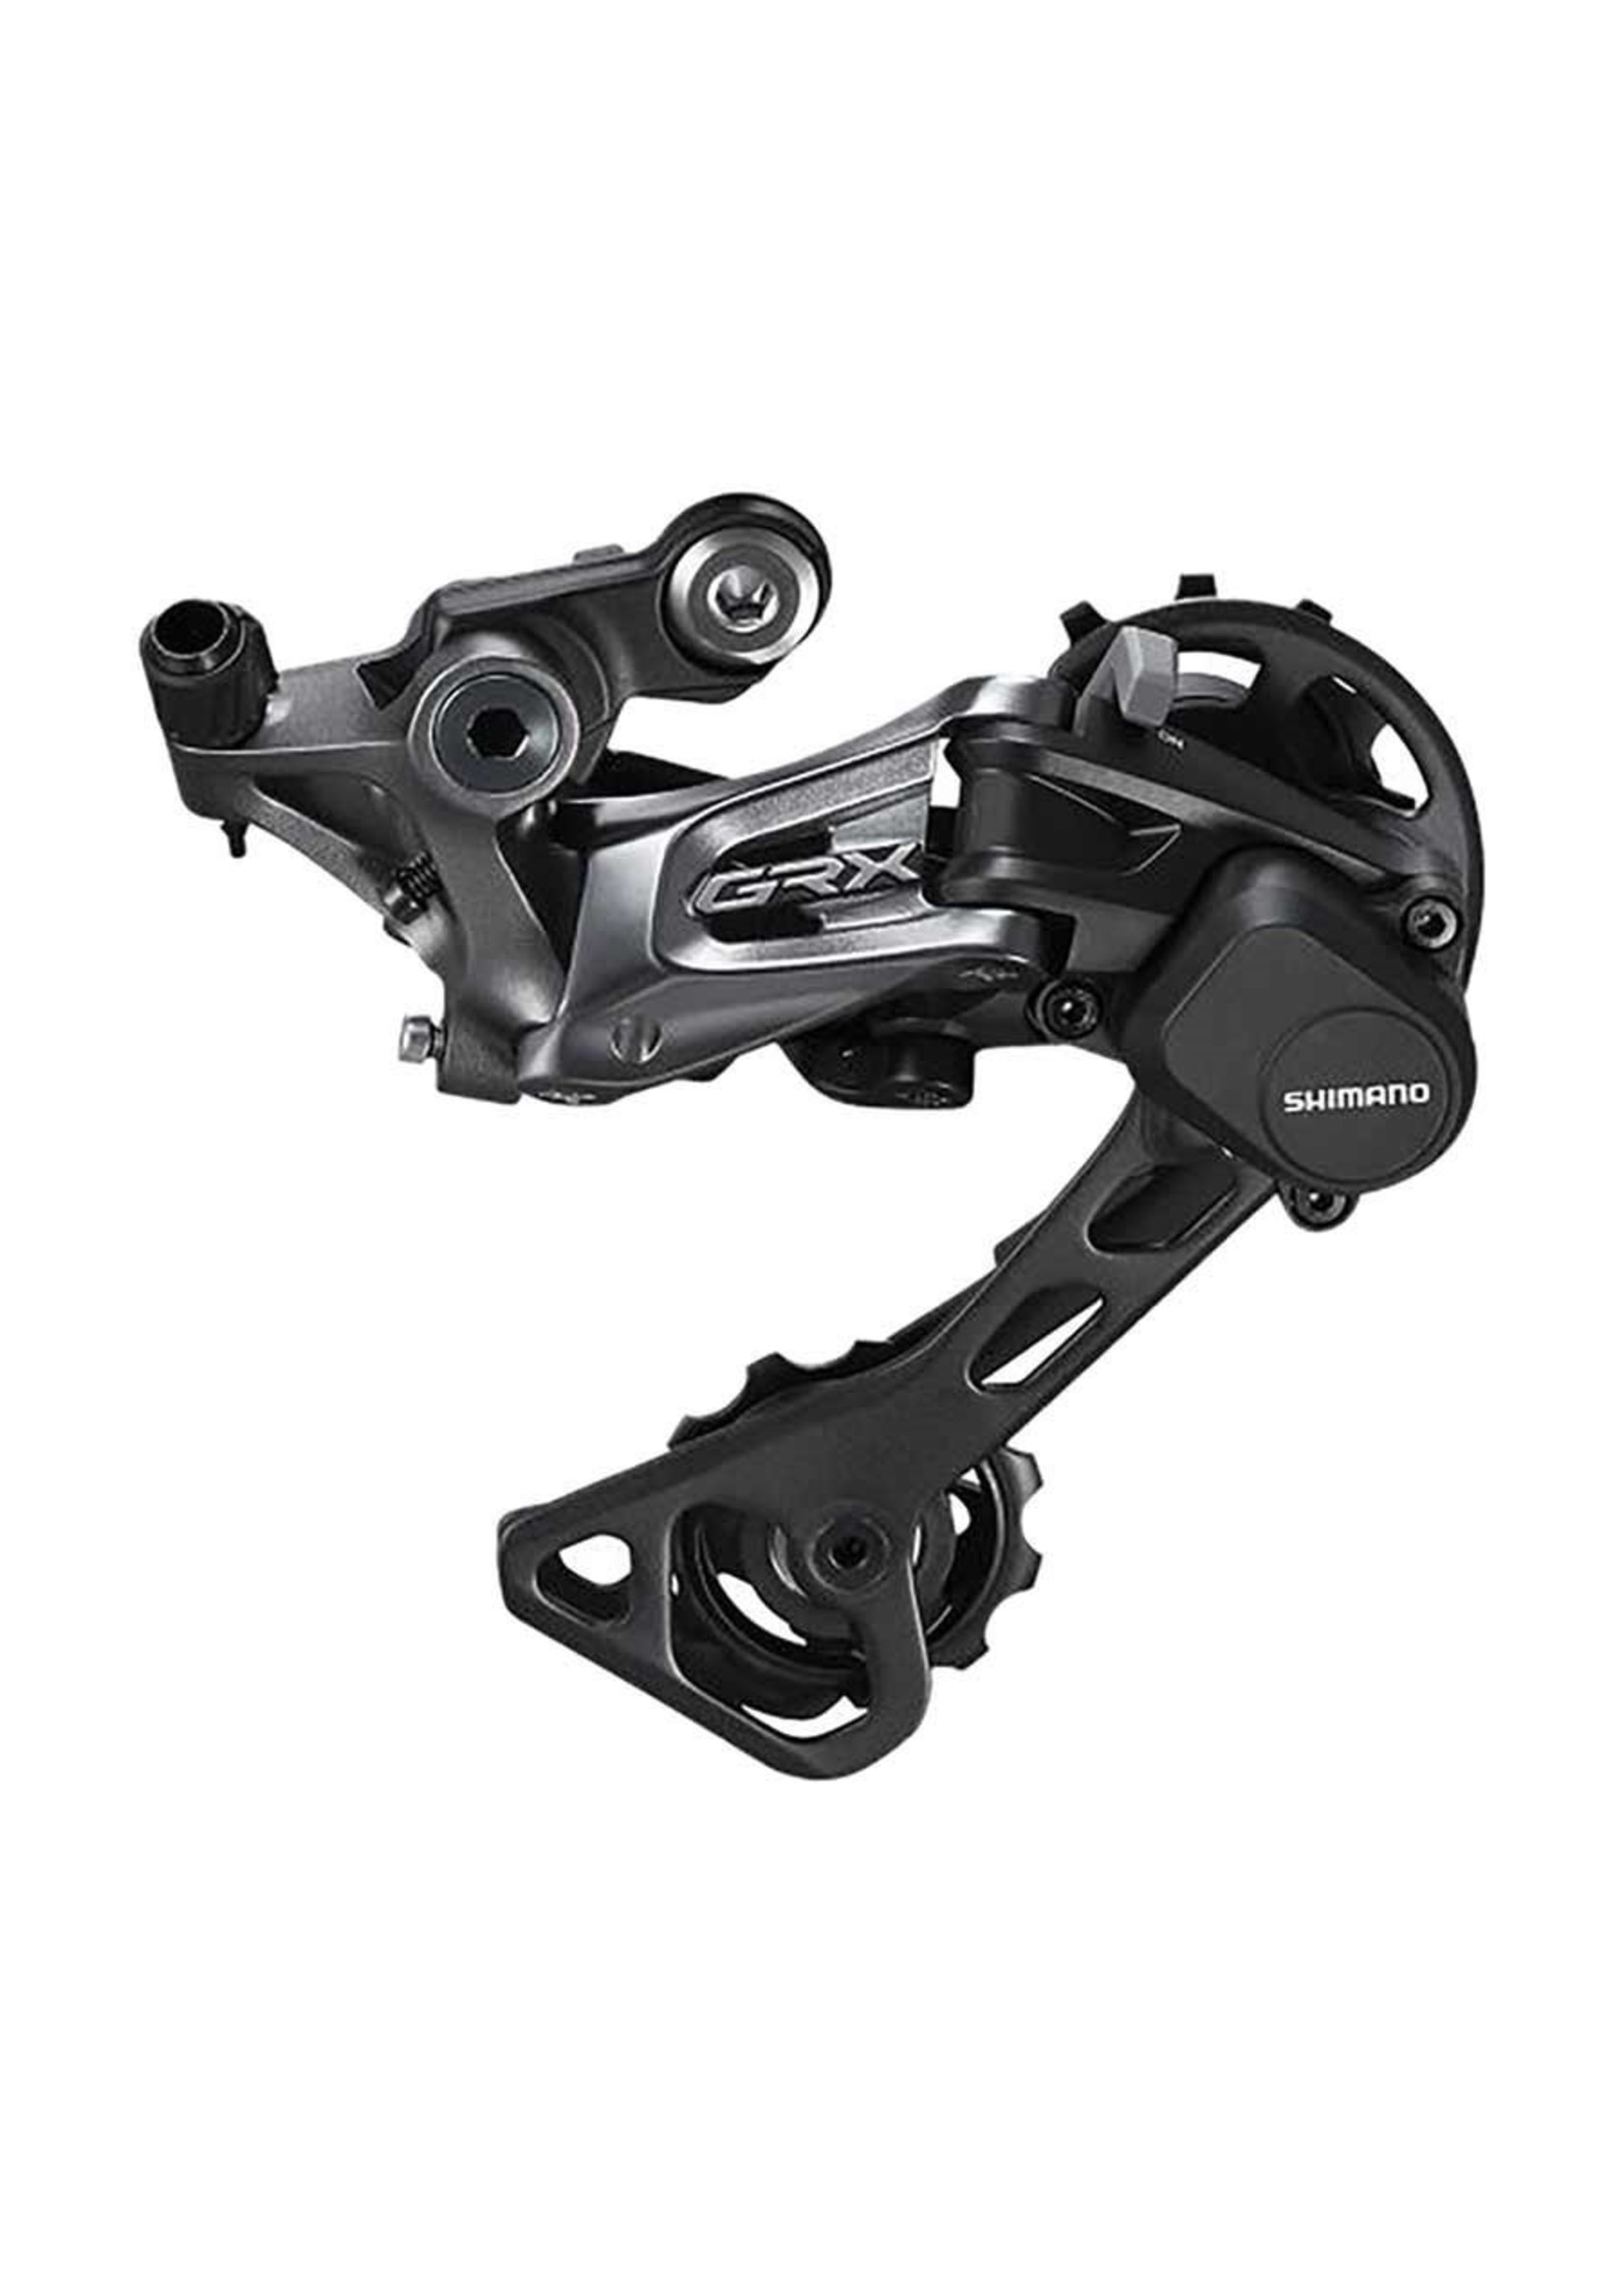 Shimano REAR DERAILLEUR, RD-RX812, GRX, 11-SPEED, TOP NORMAL, SHADOW PLUS DESIGN, DIRECT ATTACHMENT